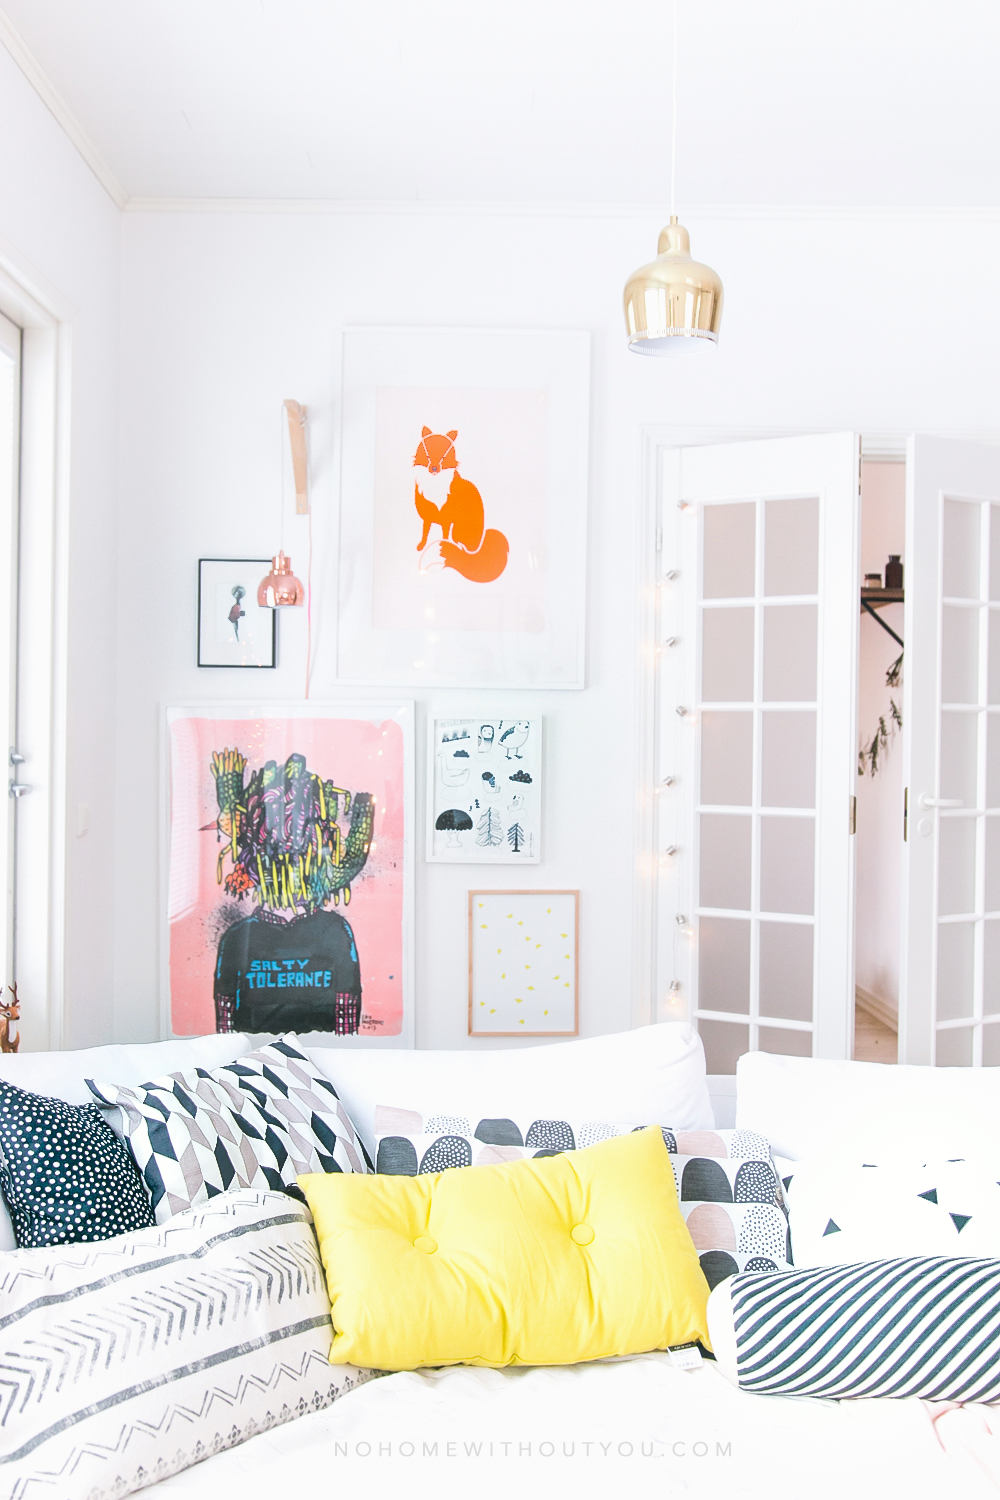 No Home Without You - Colorful living room   (14 of 21)